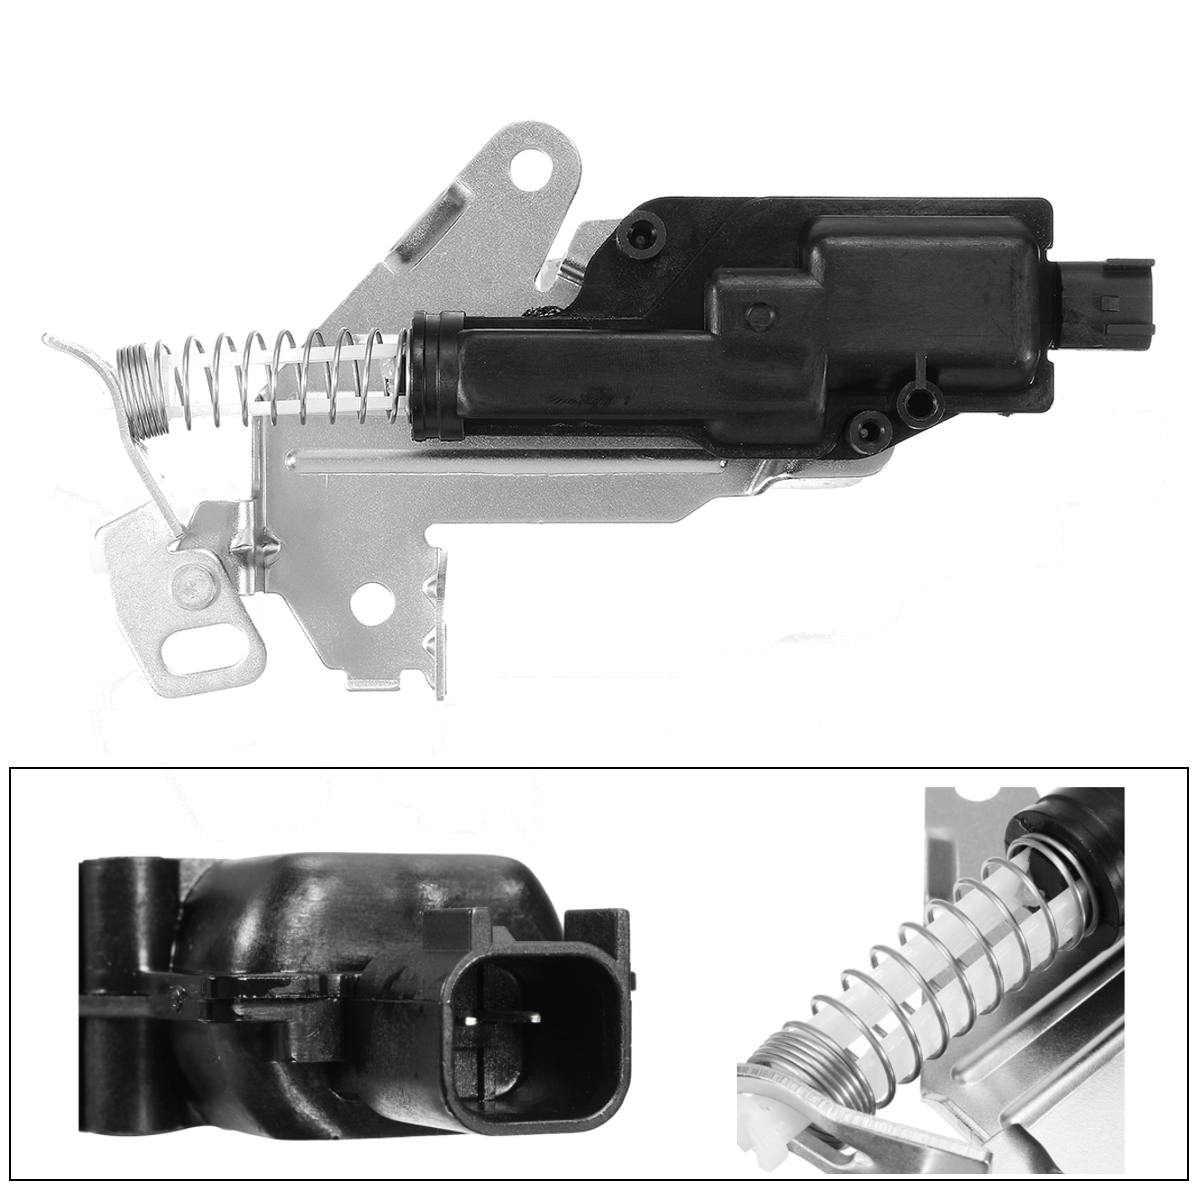 New Rear Tailgate Door Lock/Latch For Fiesta MK5 MK6 02-08 For Ford Fusion 20-12 Lid Trunk Tailgate Central Lock Motor Actuator